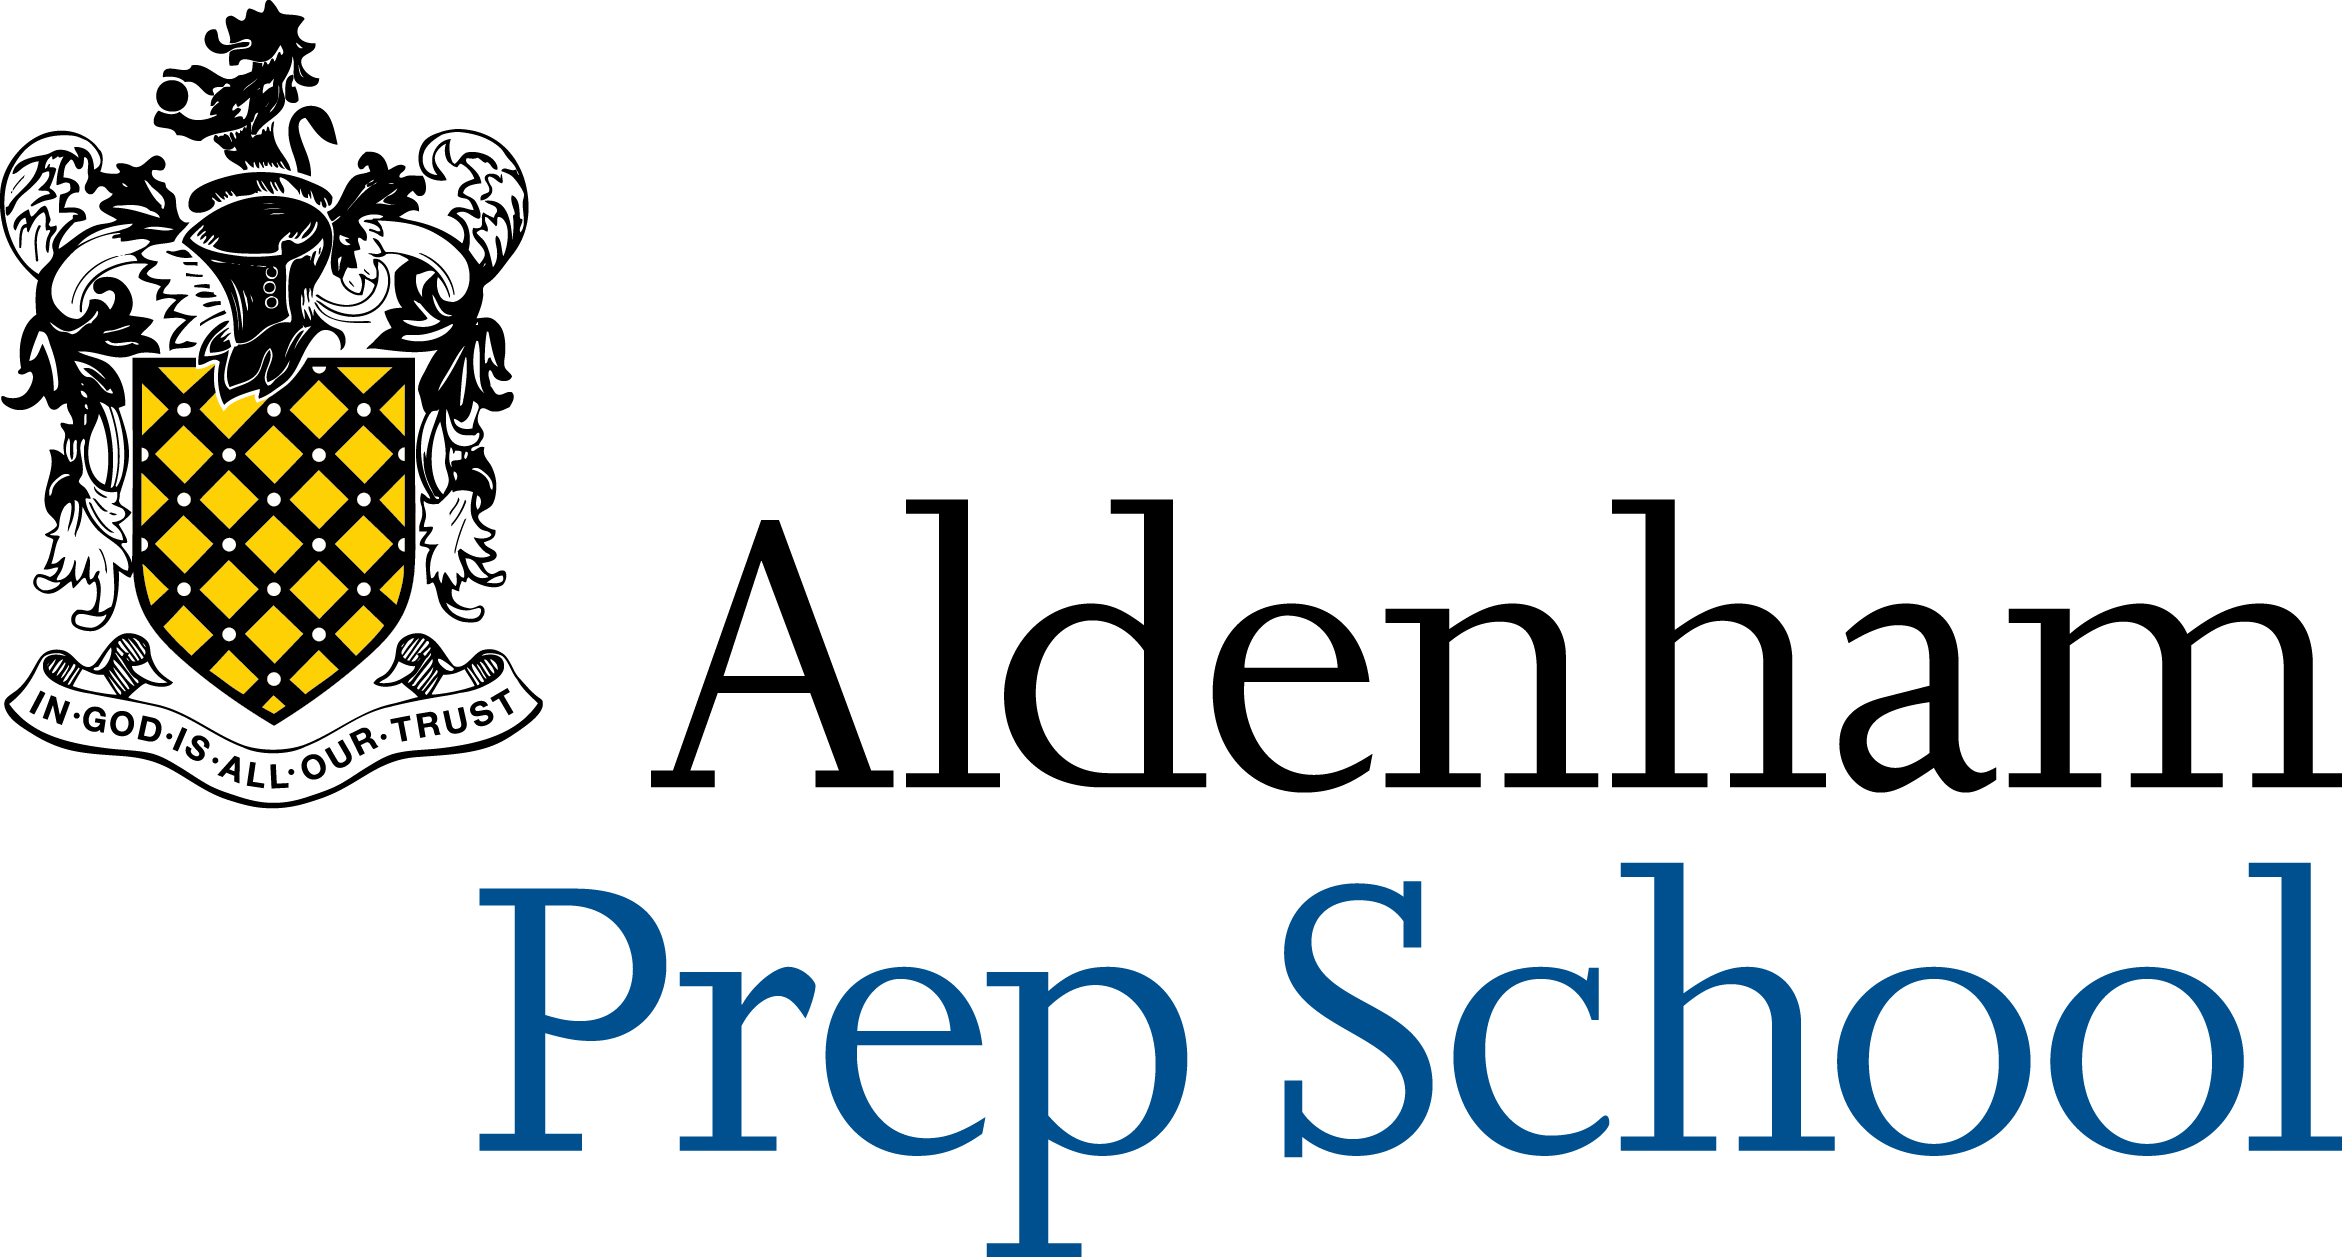 Aldenham Preparatory School logo